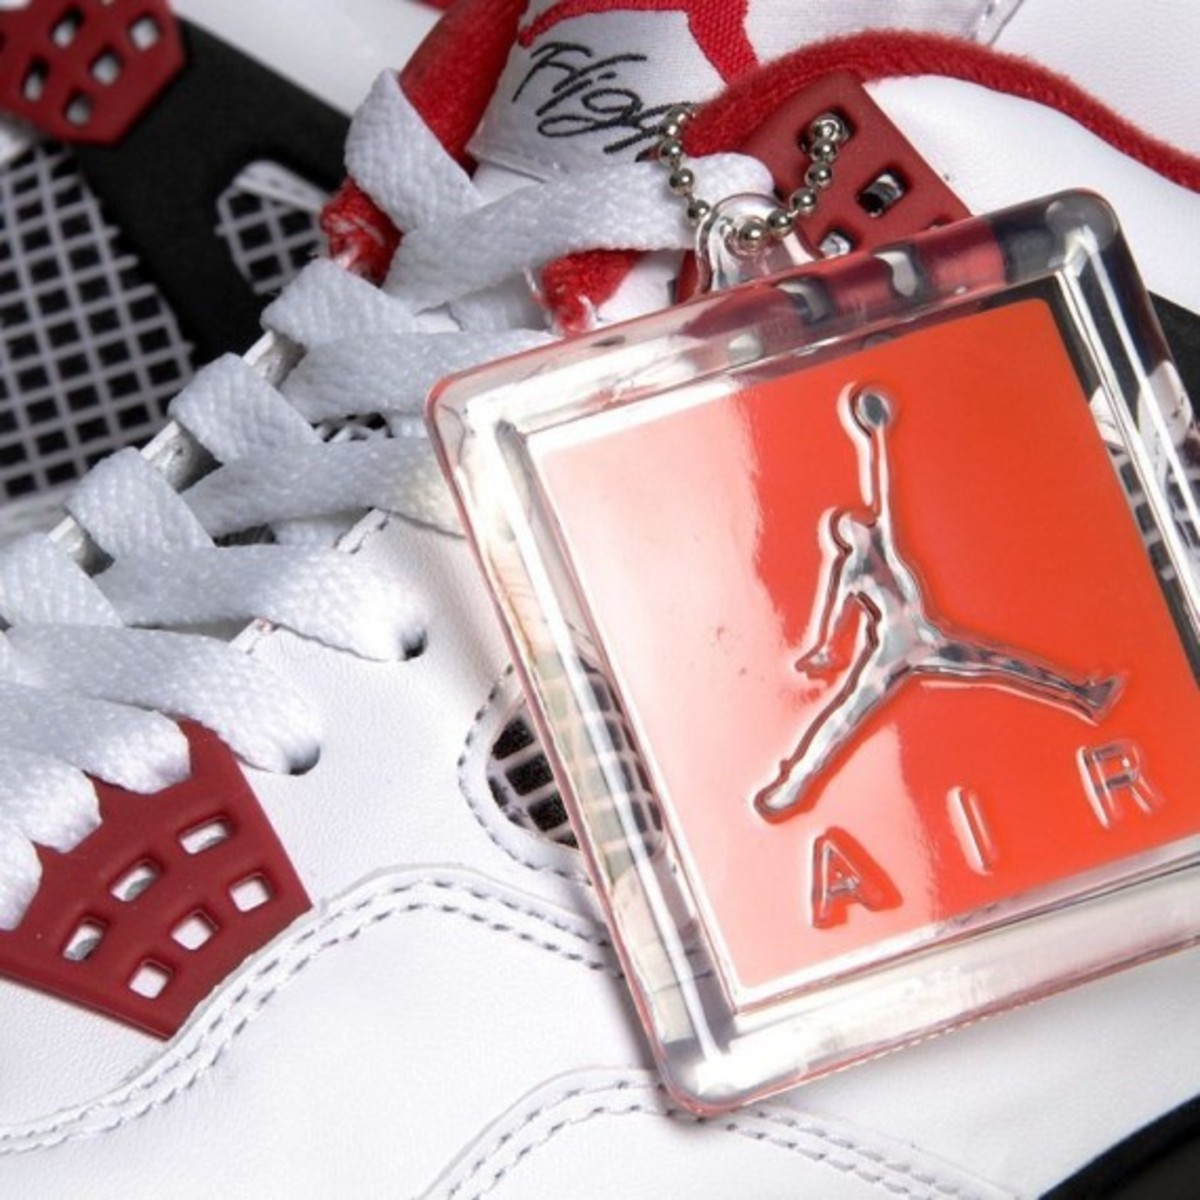 air-Jordan-4-retro-fire-red-restock-end-clothing-08